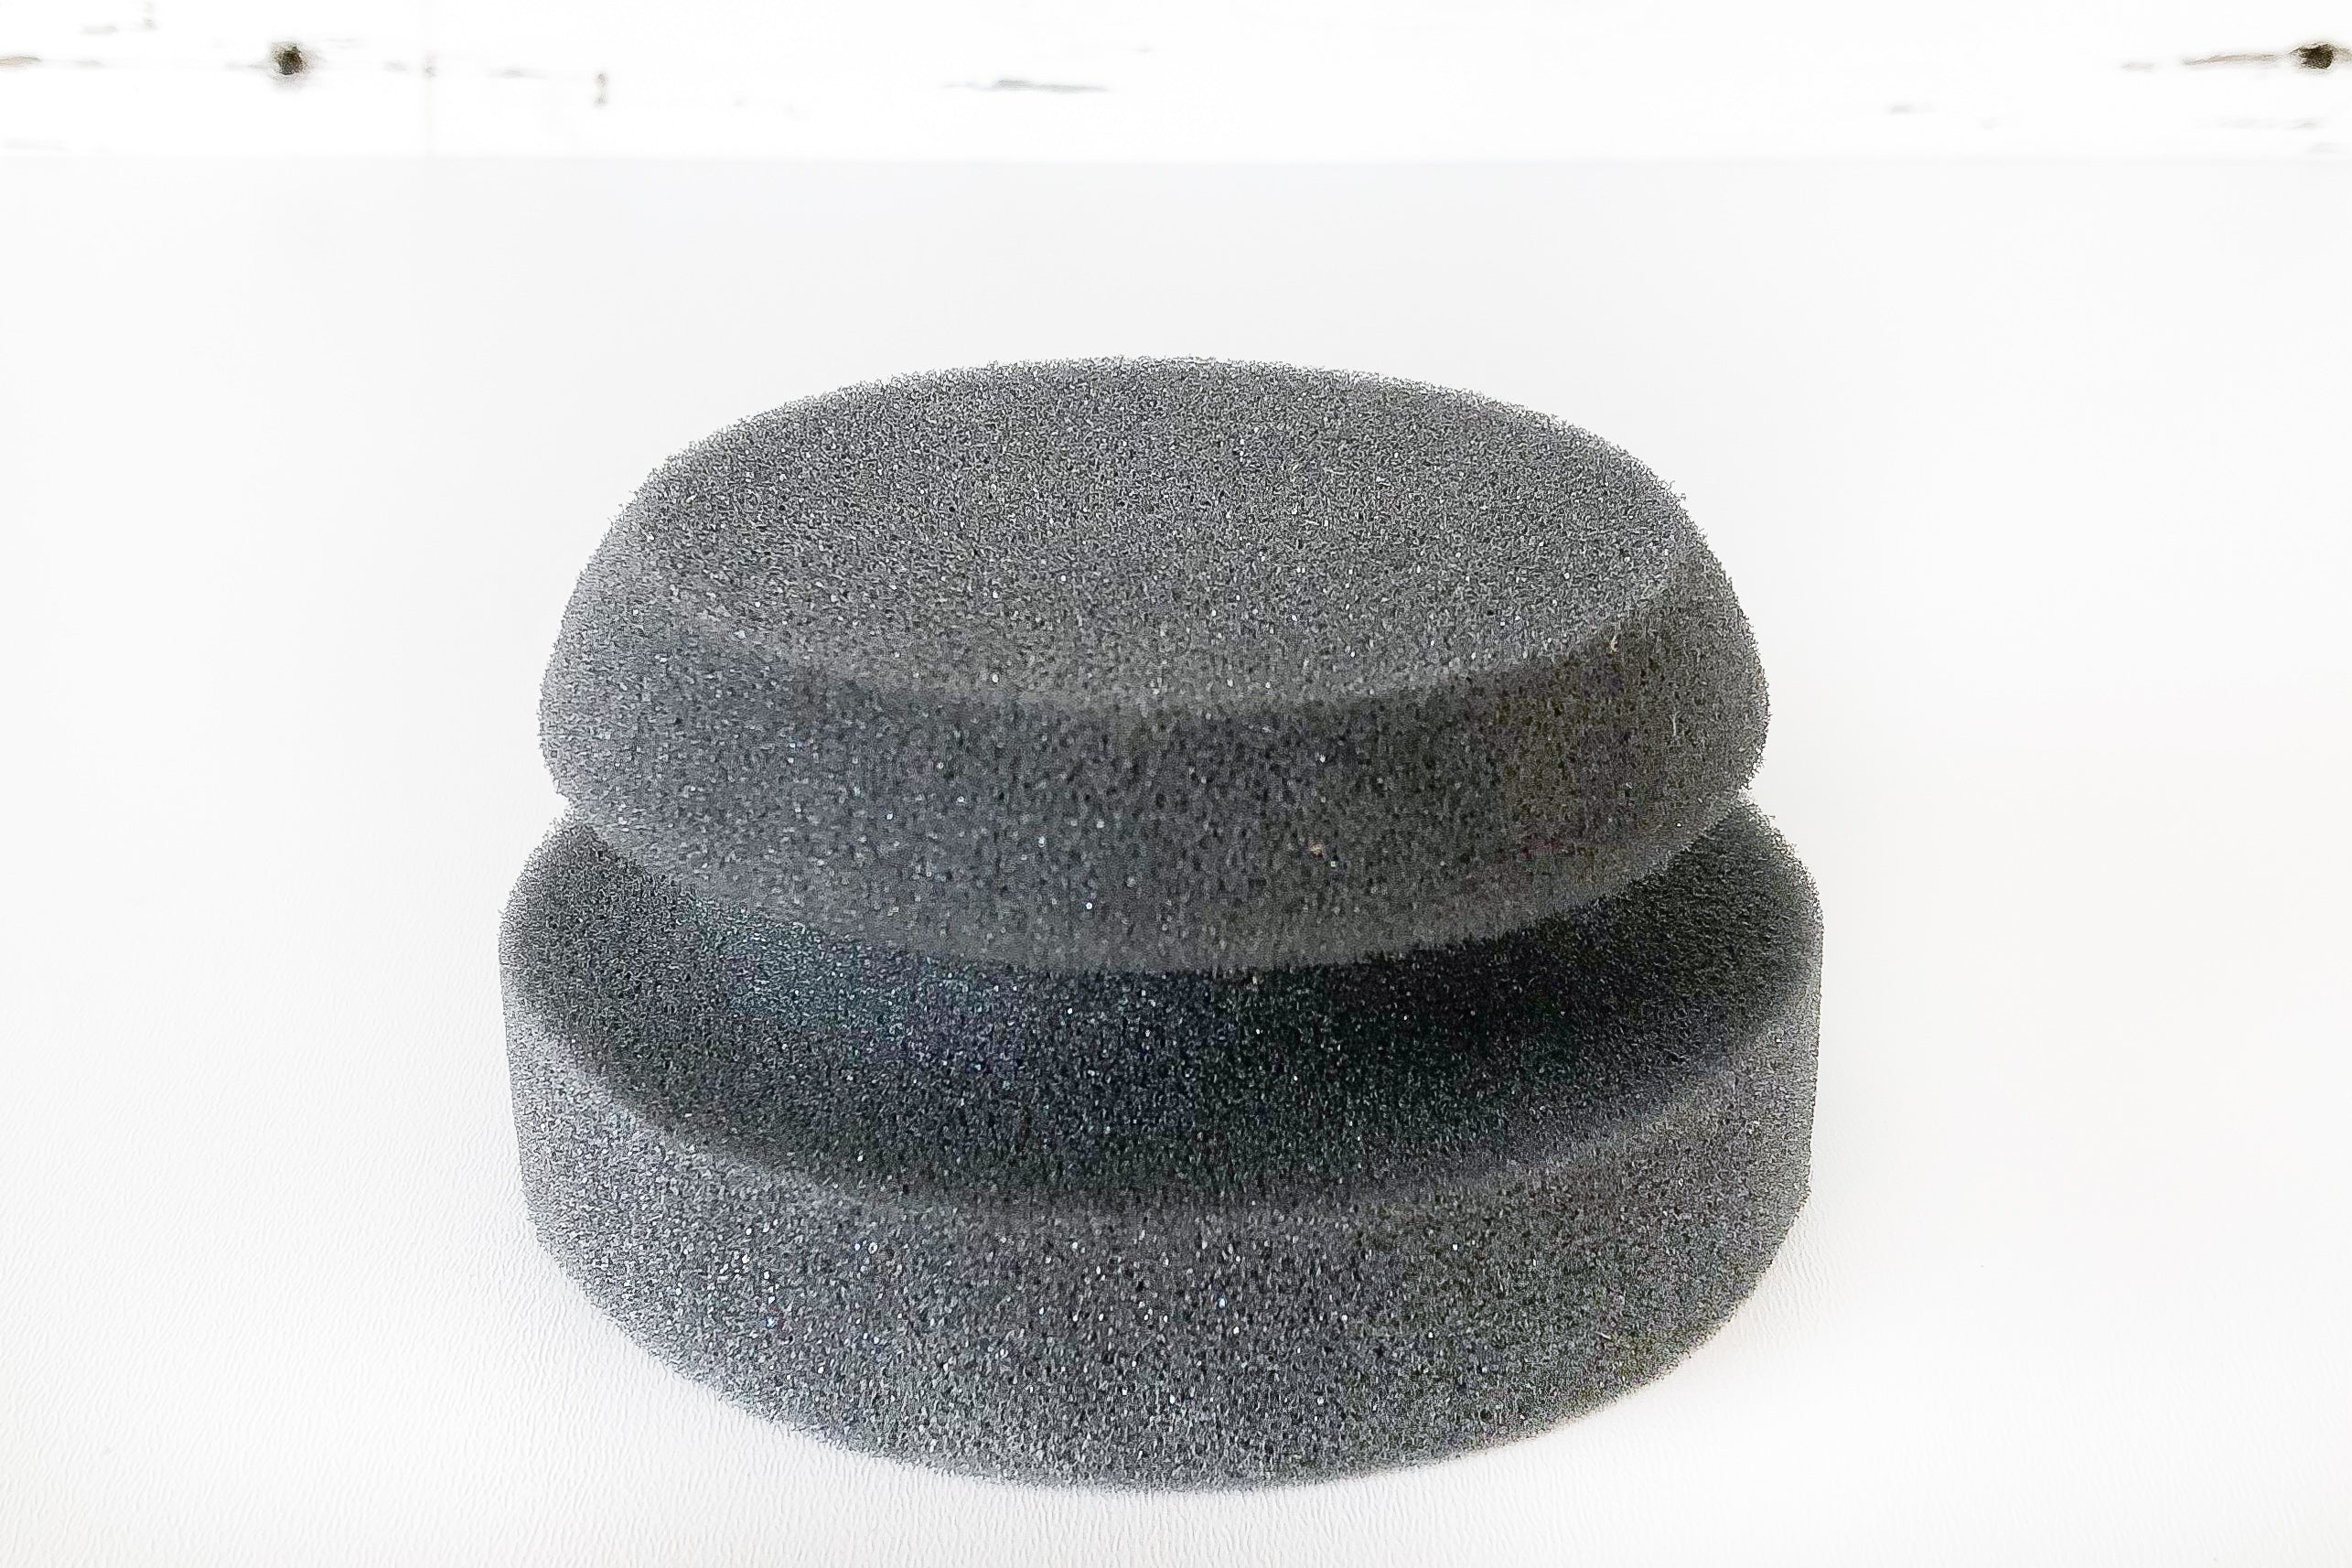 painting sponge - round hand-held sponge for applying furniture paint